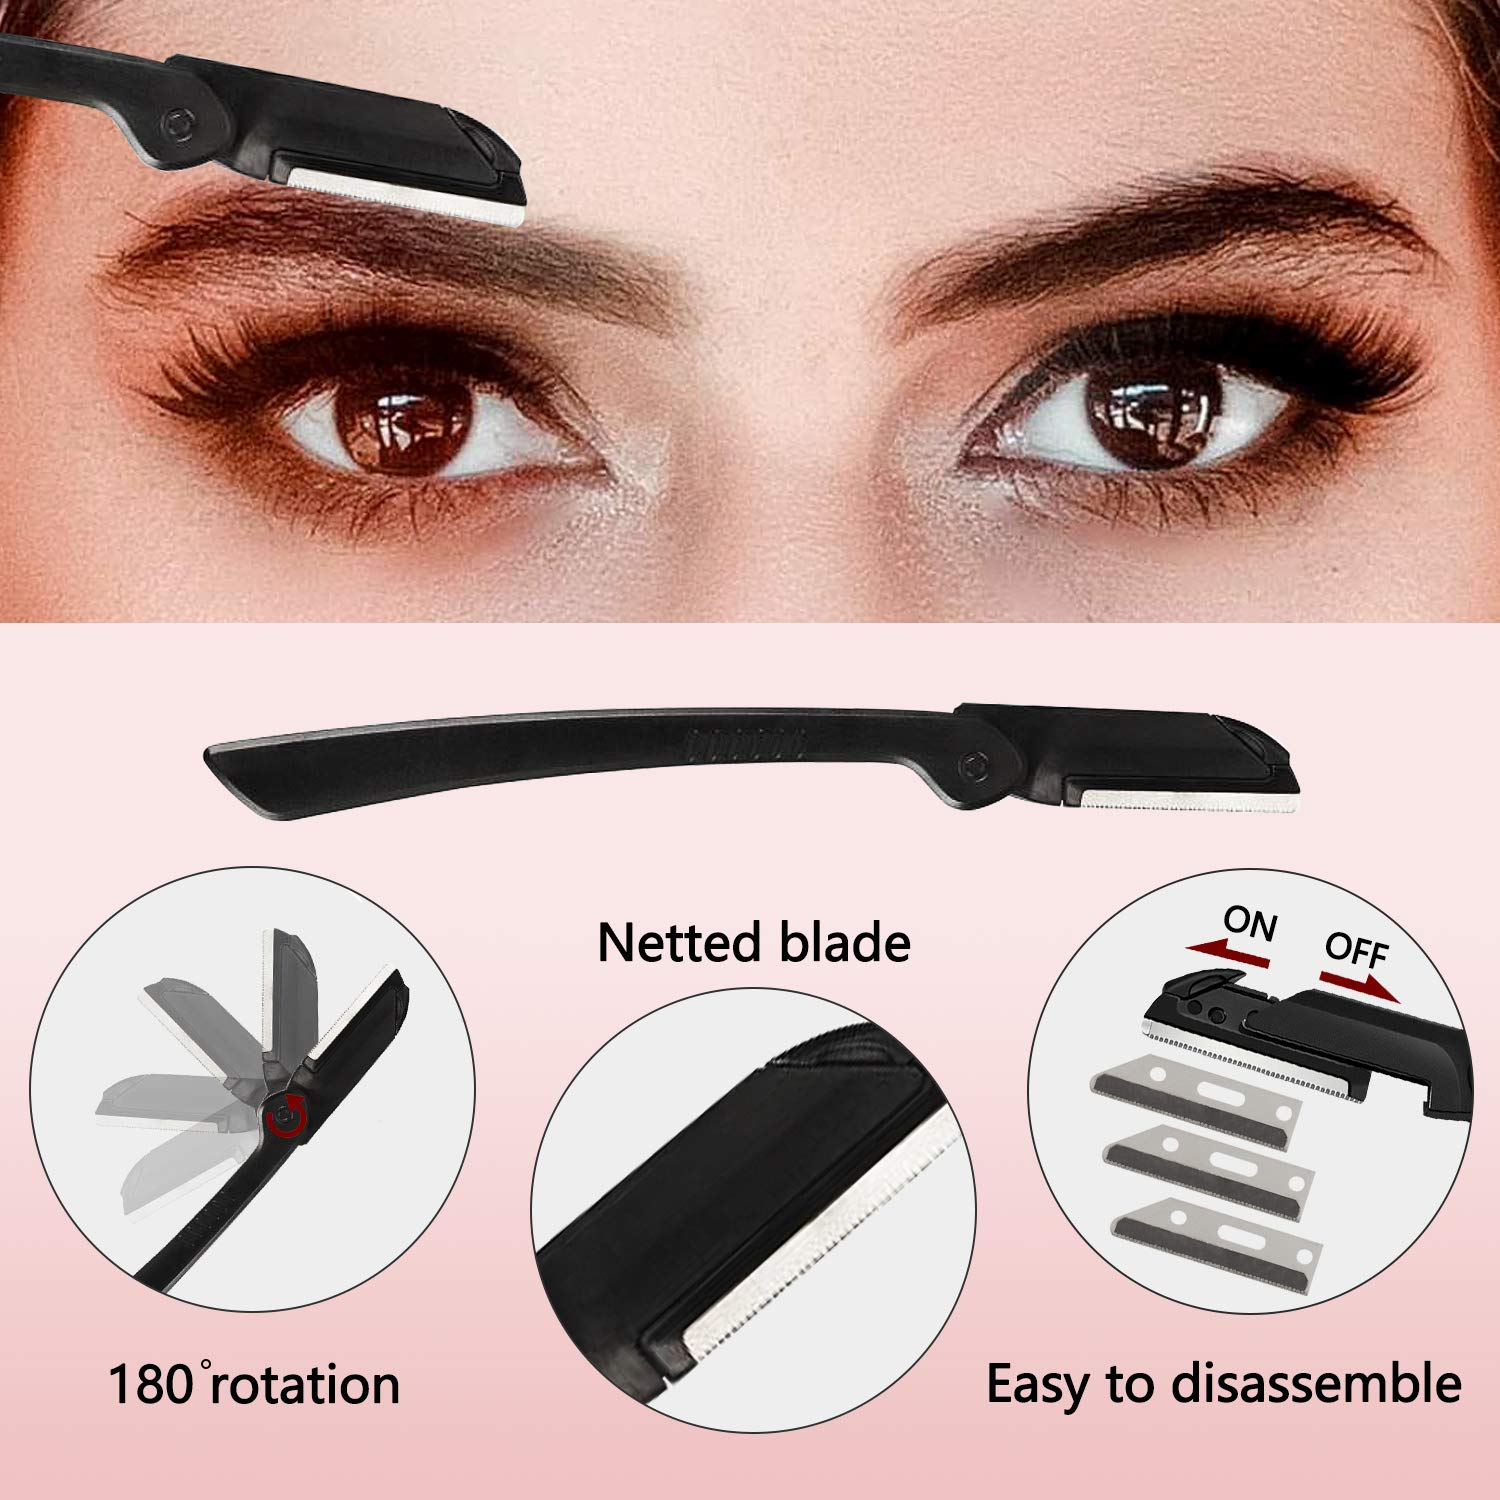 Eyebrow Kit, 4 in 1 Stainless Steel Eyebrow Grooming Set, Eyebrow Scissors, Eyebrow Brush, Tweezers, Eyebrow Razor, Eyebrow Trim Tool Set for for Women Men (4Pcs): Beauty